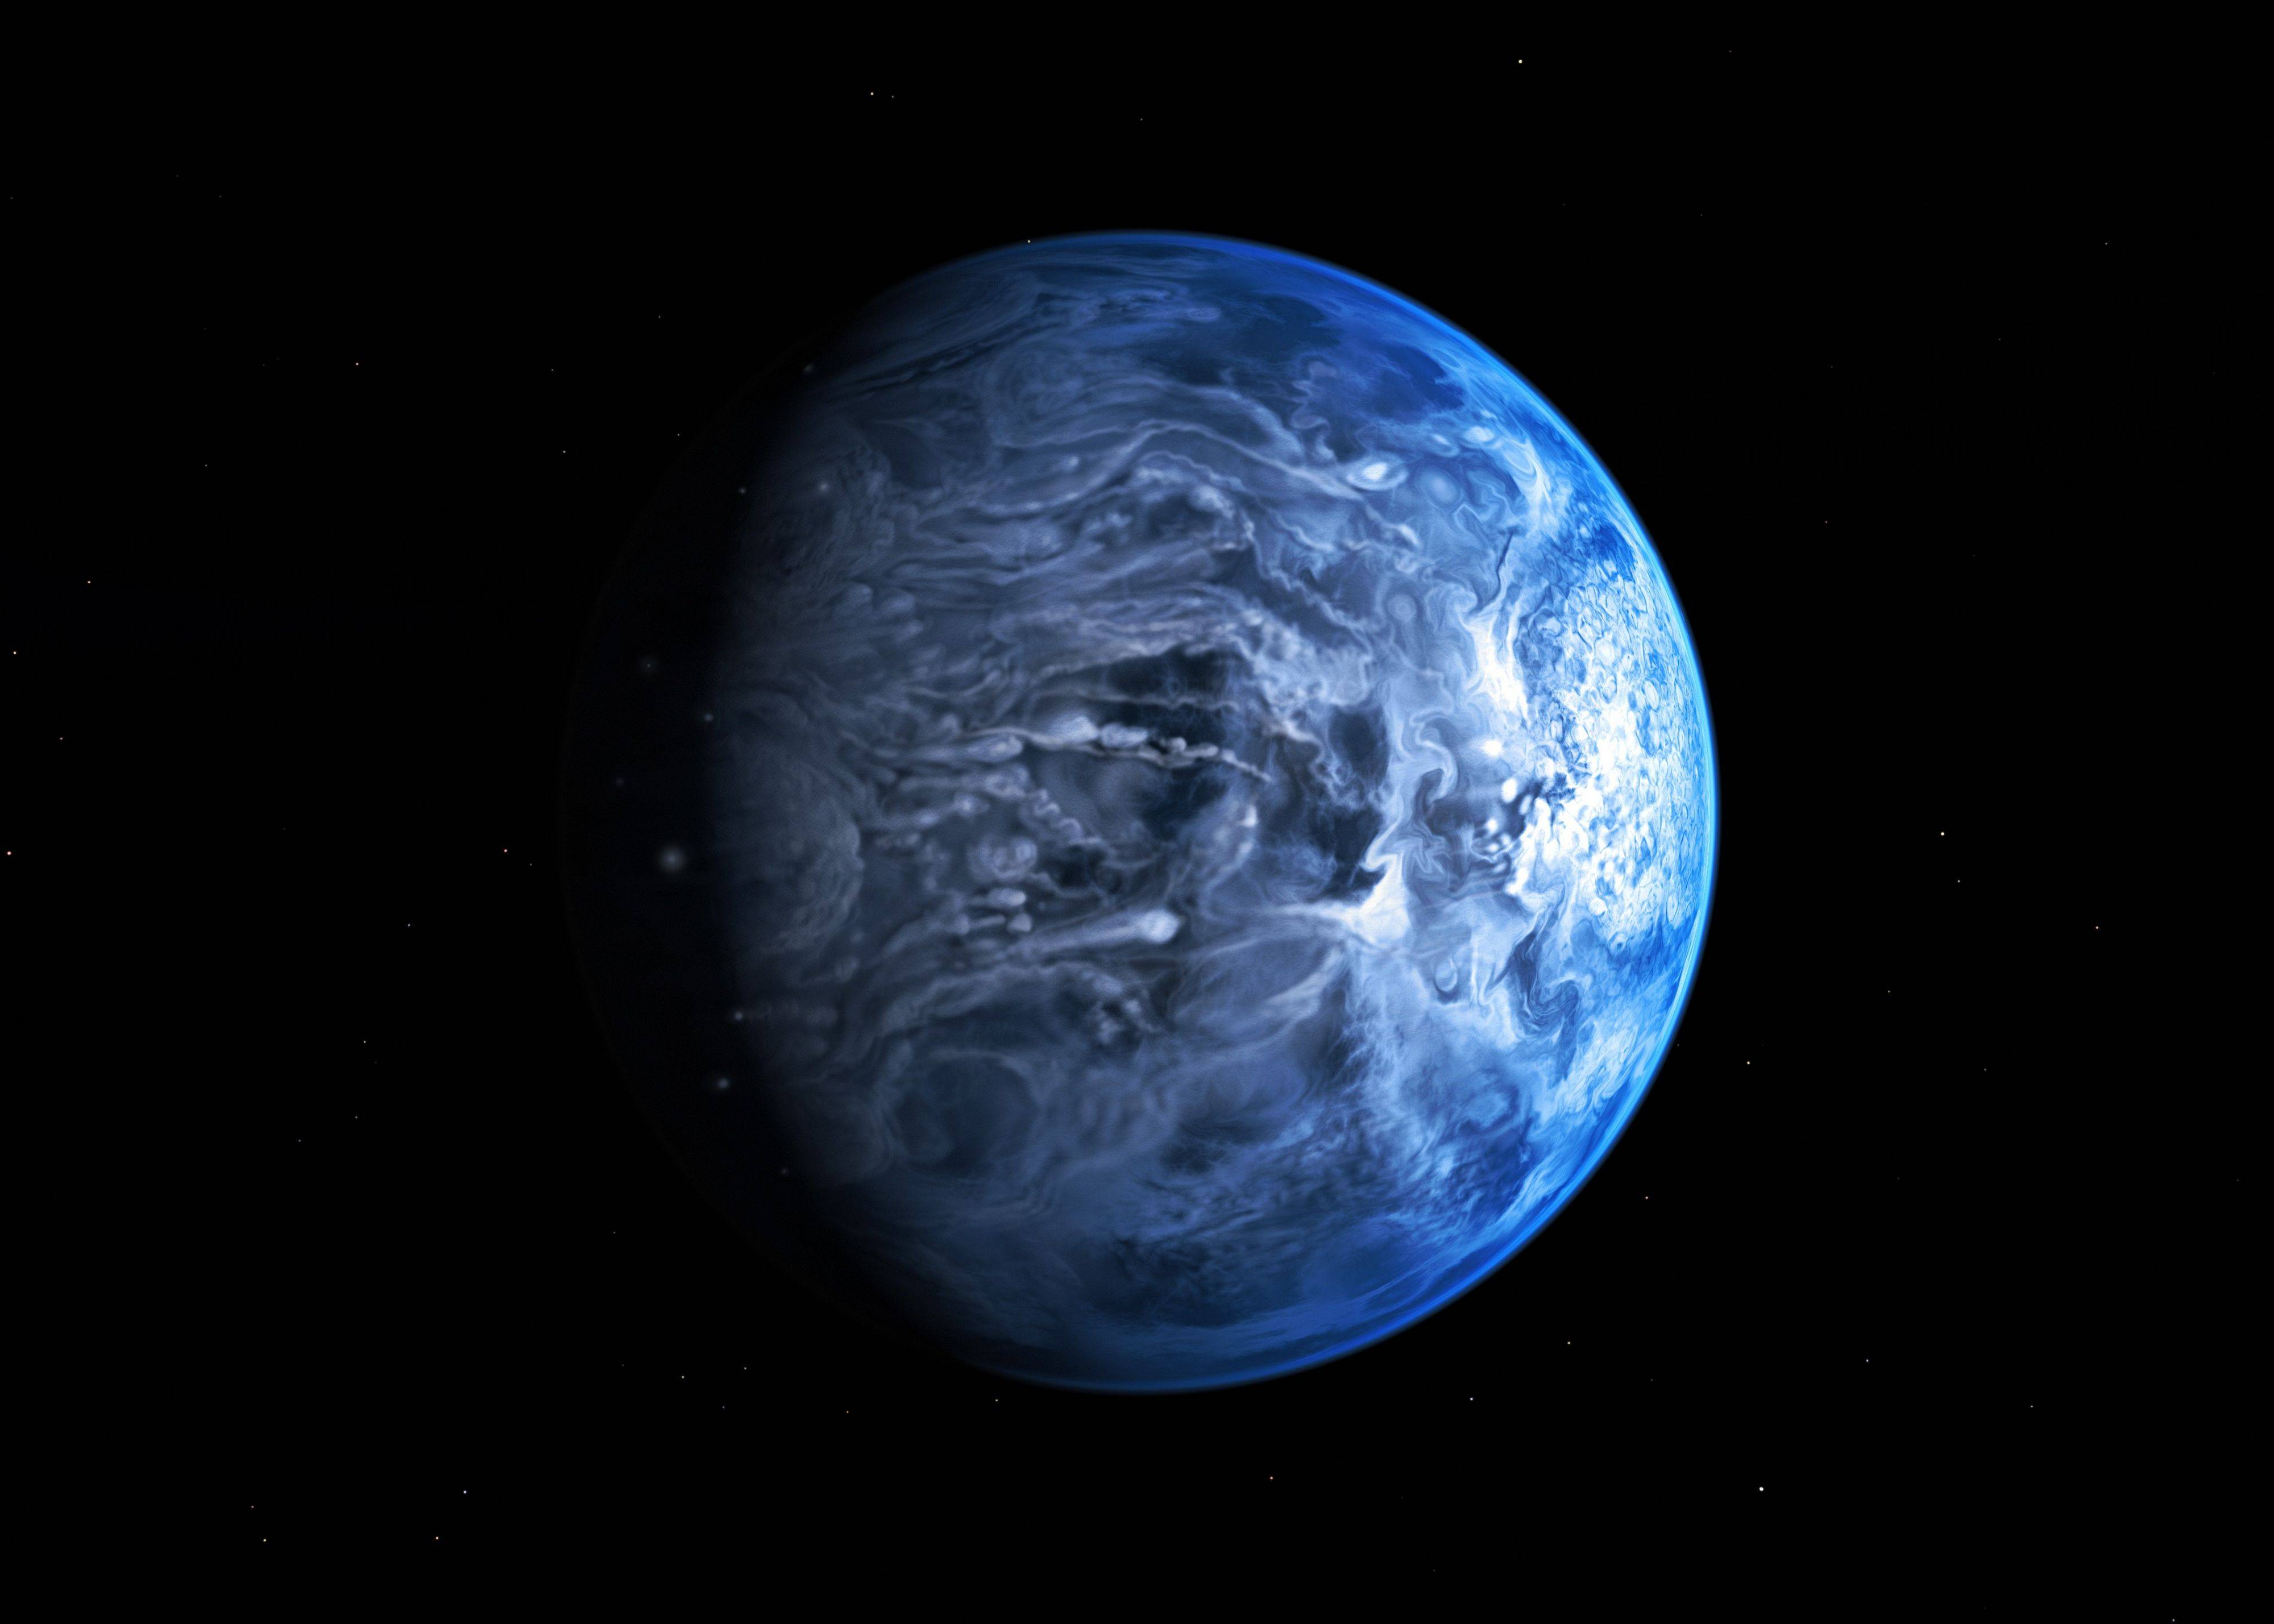 An artist�s impression of one of Earth�s nearest planets outside the solar system, named HD 189733B. Astronomers said Friday that for the first time they had gained an understanding of HD 189733B, which is around 63 light years away, by discovering the huge gas giant�s blue color.